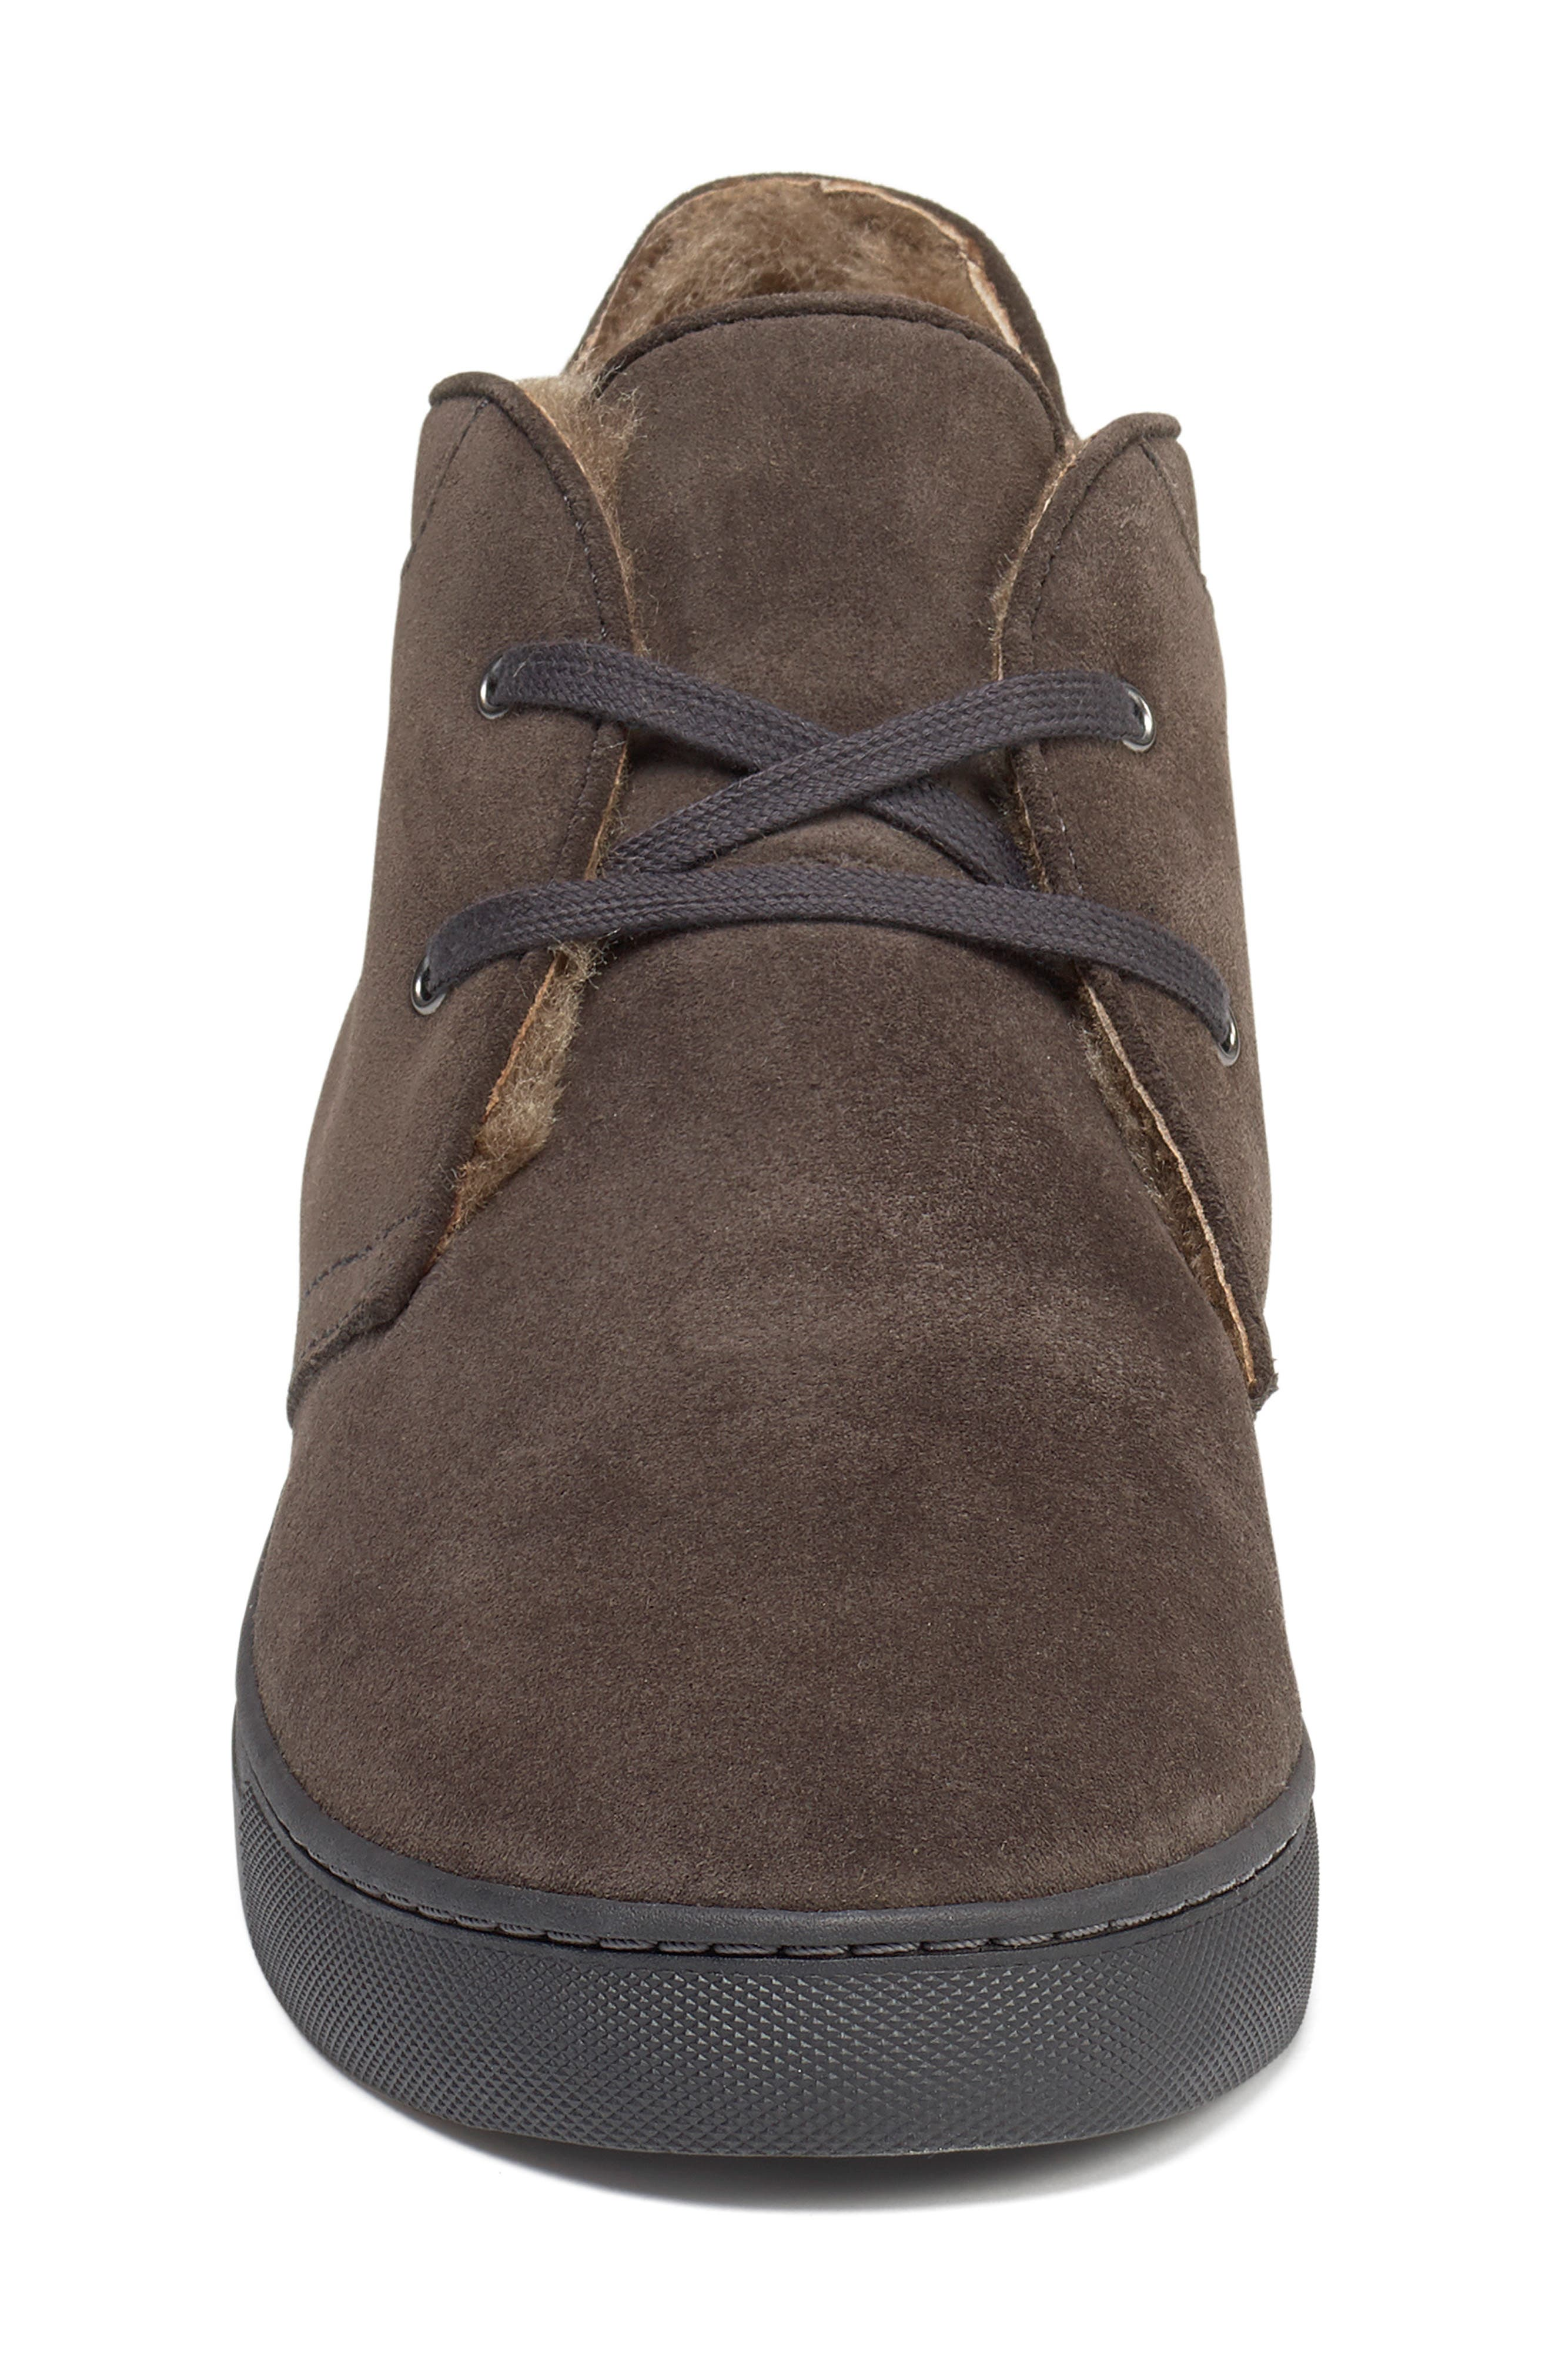 Ariston Genuine Shearling Chukka Boot,                             Alternate thumbnail 4, color,                             CHARCOAL SUEDE